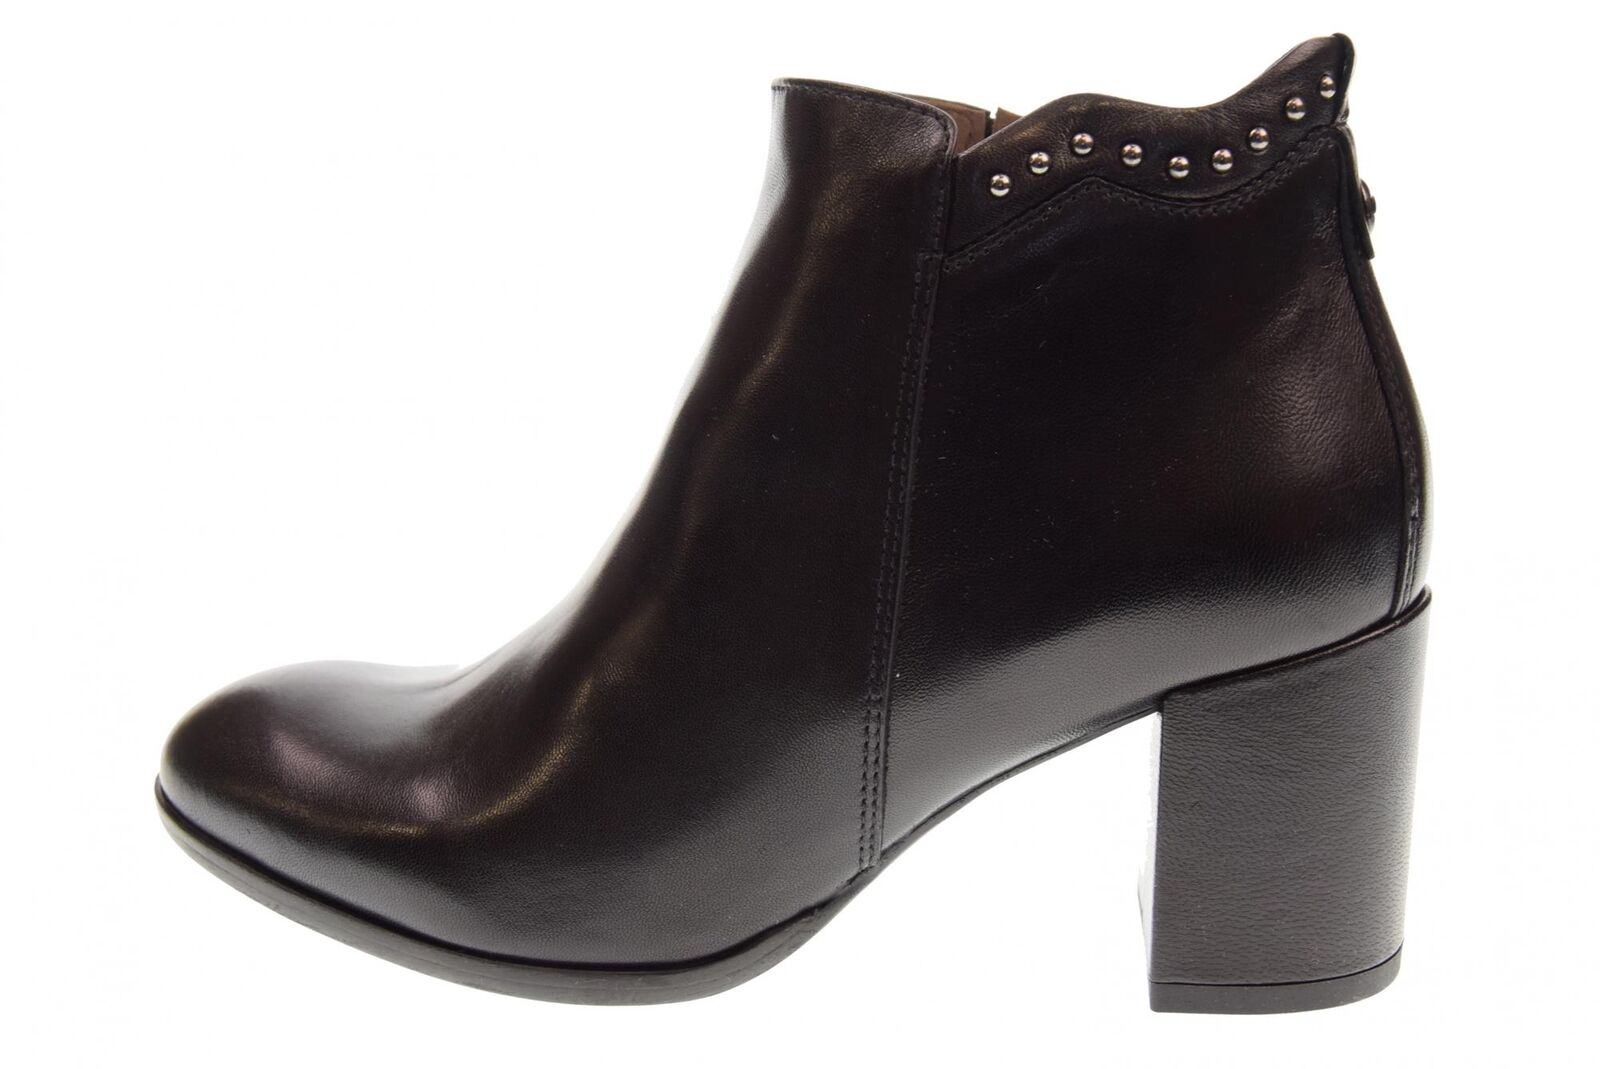 black Giardini A18us shoes woman woman woman ankle boots with heel A806331D   100 2005d8